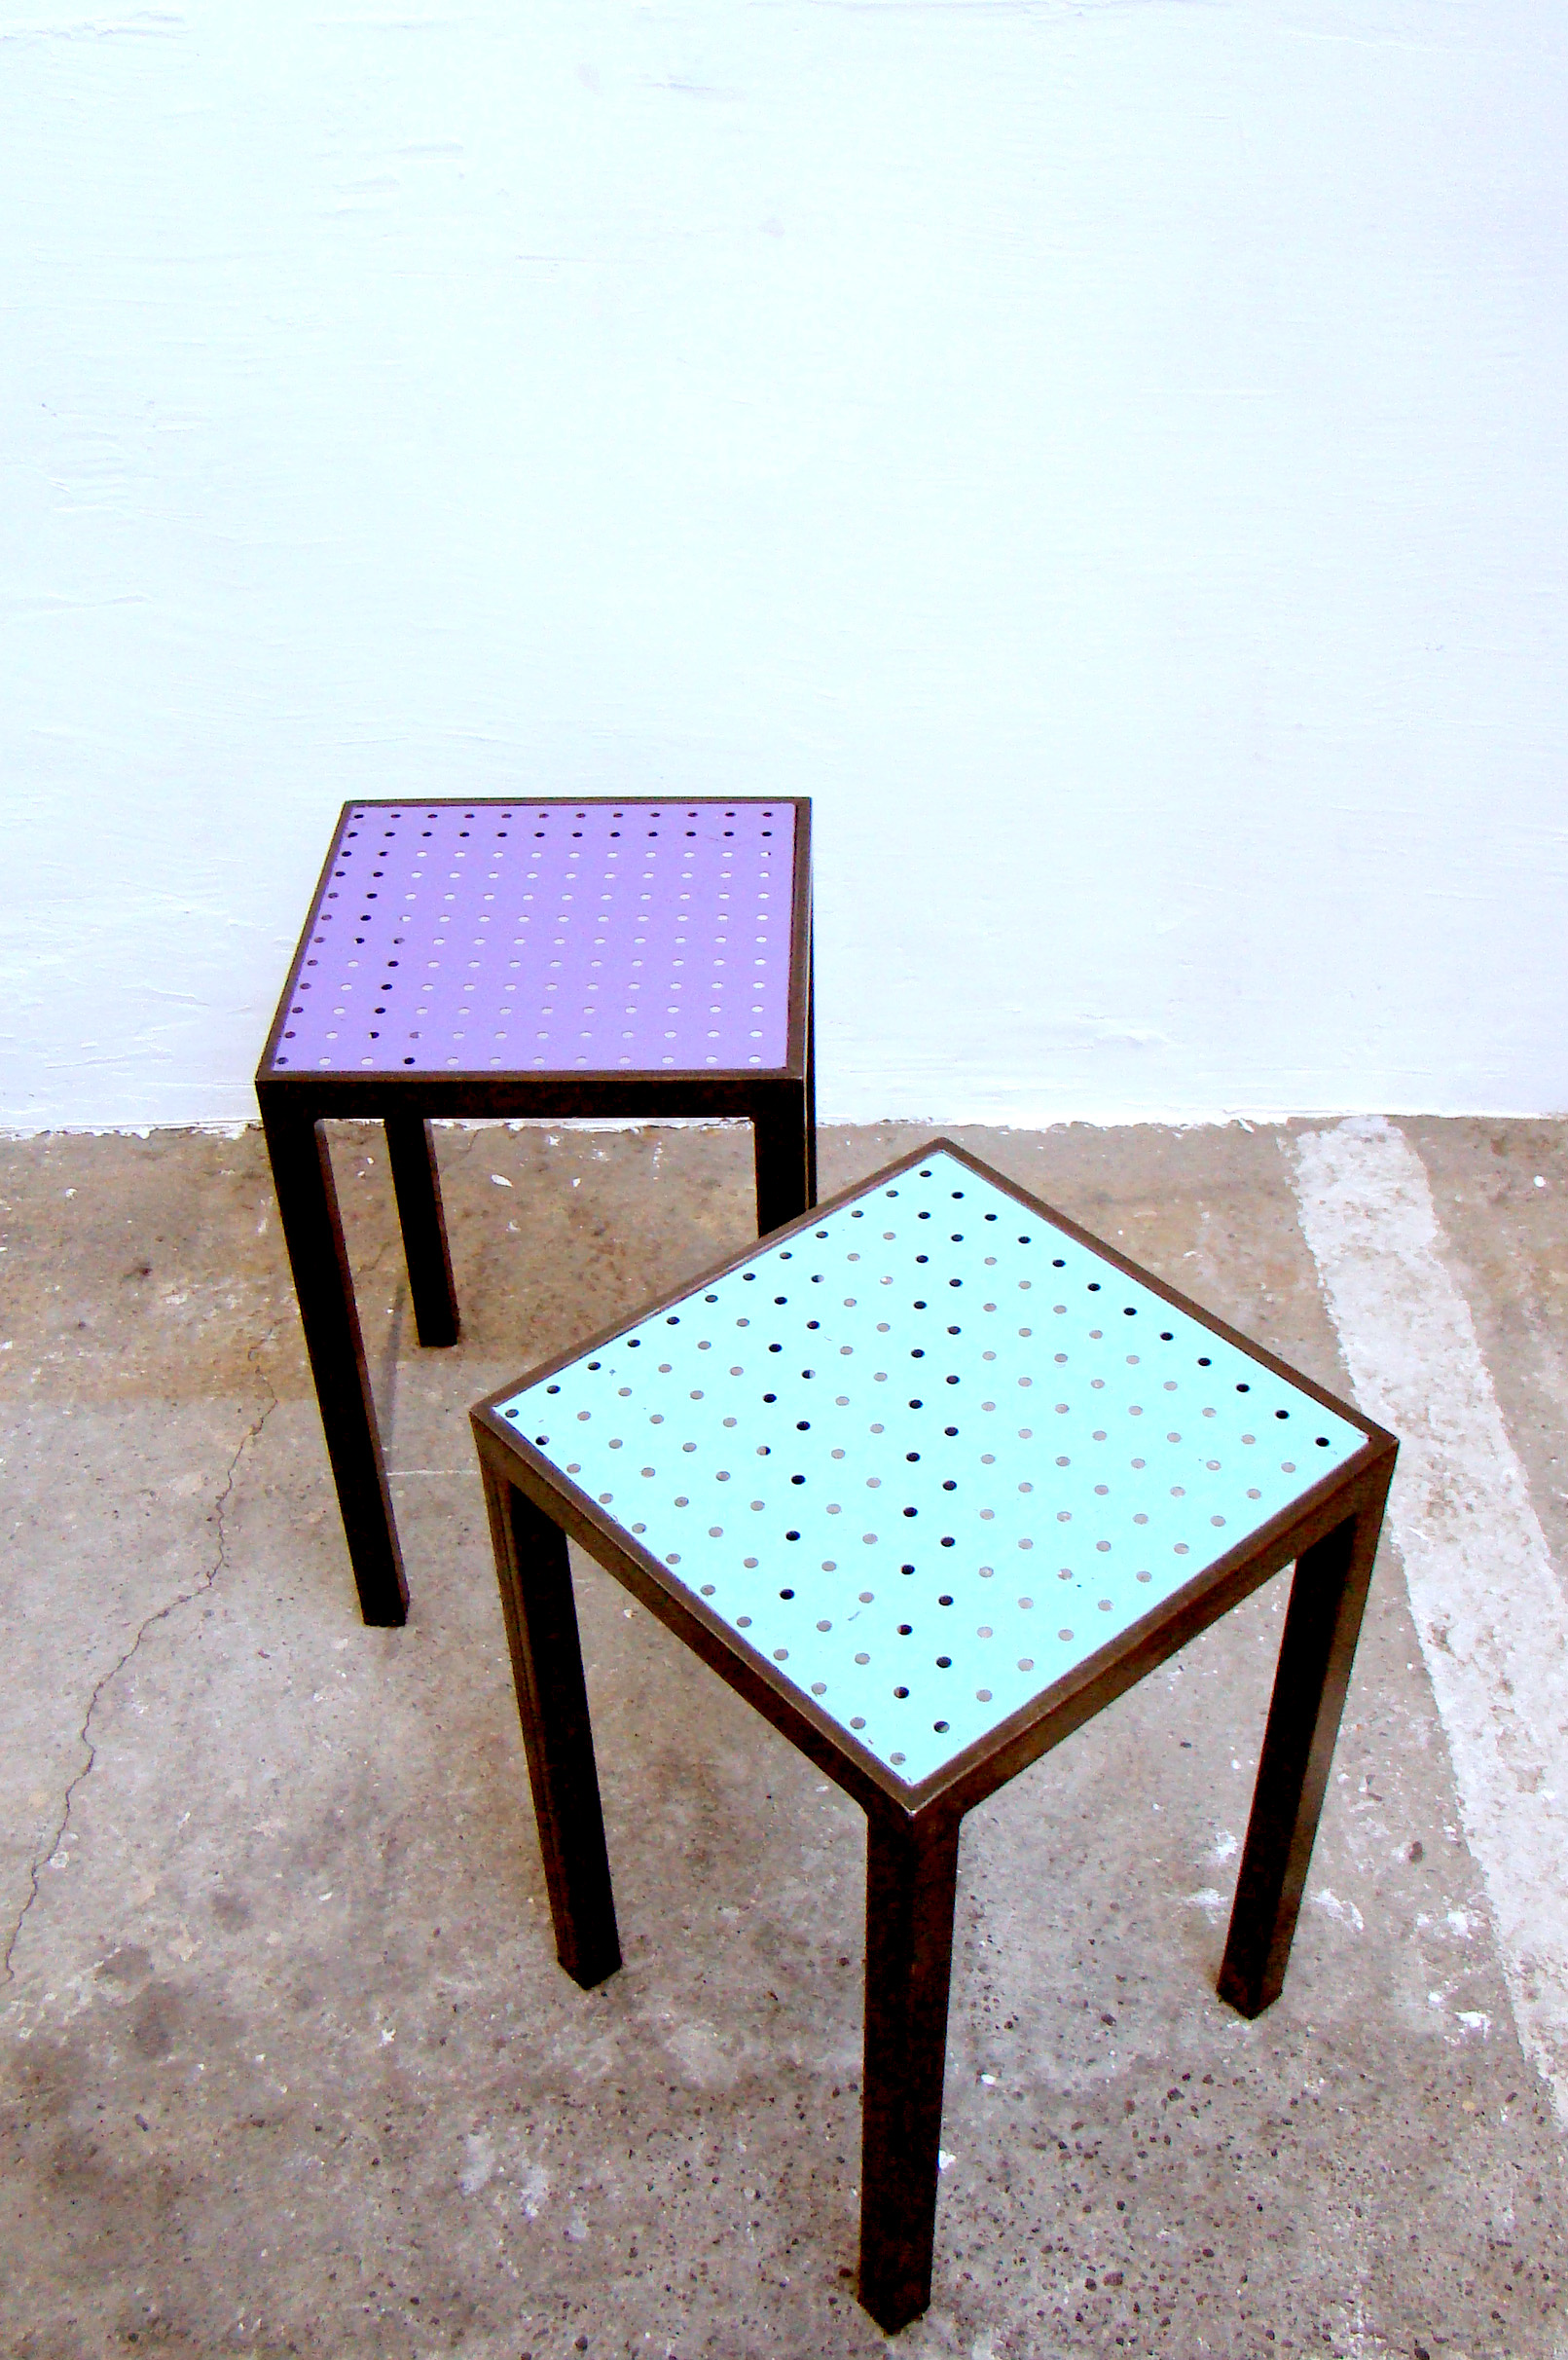 tabouret perfore bas dessus